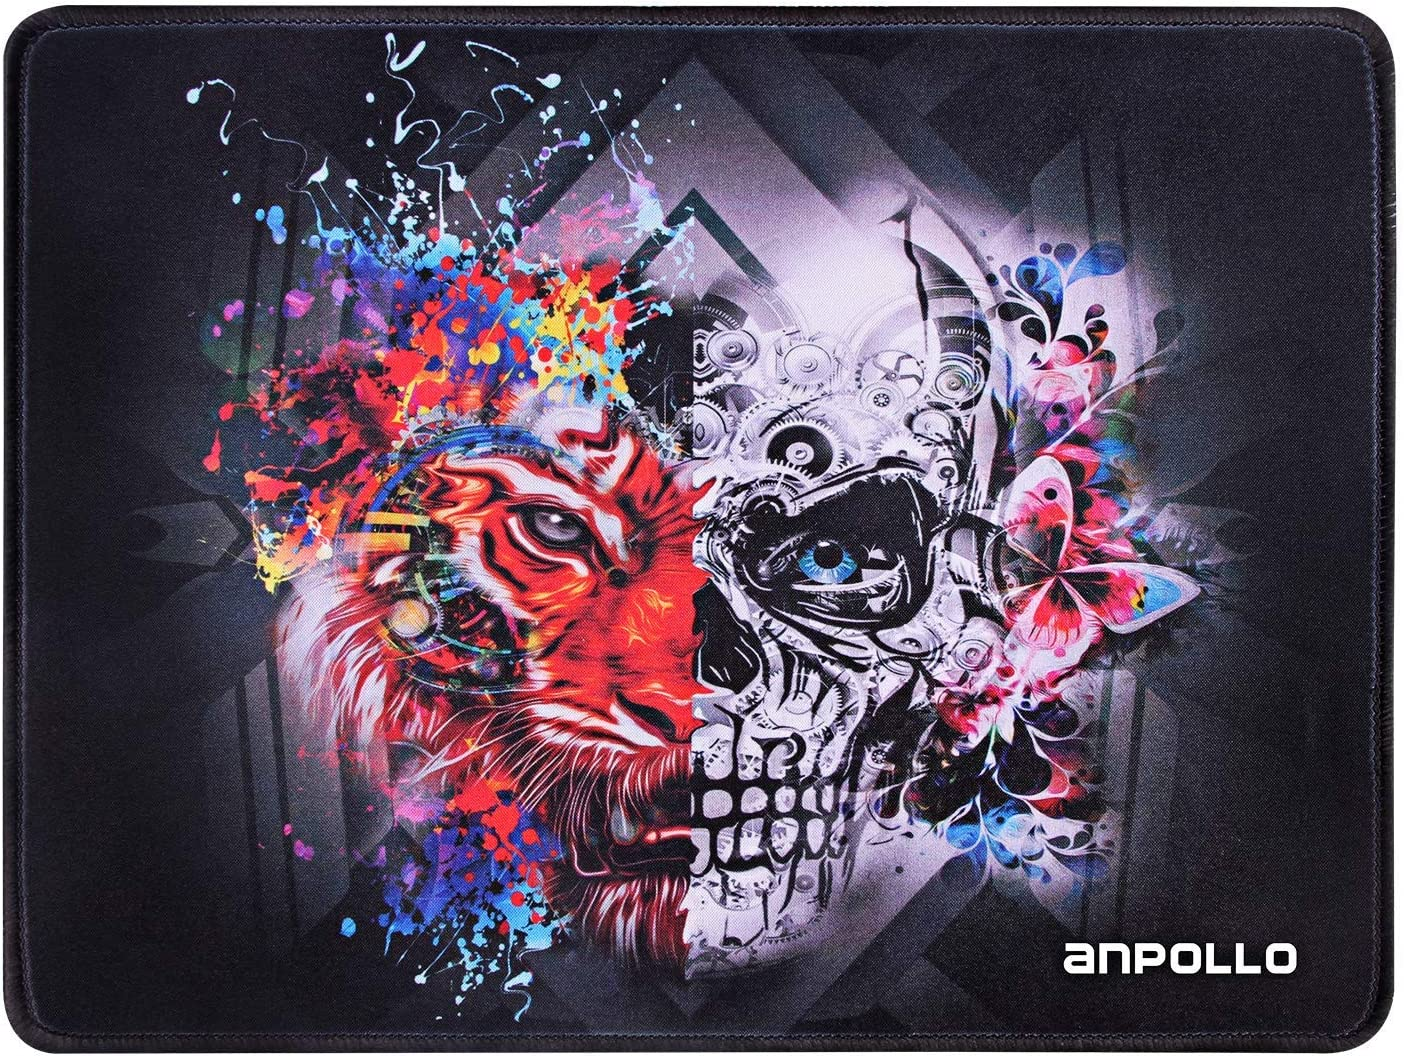 320 x 240 x 2 mm Anpollo Mouse Mat Gaming Compatible with Laser and Optical Mice Non-Slip Rubber Base